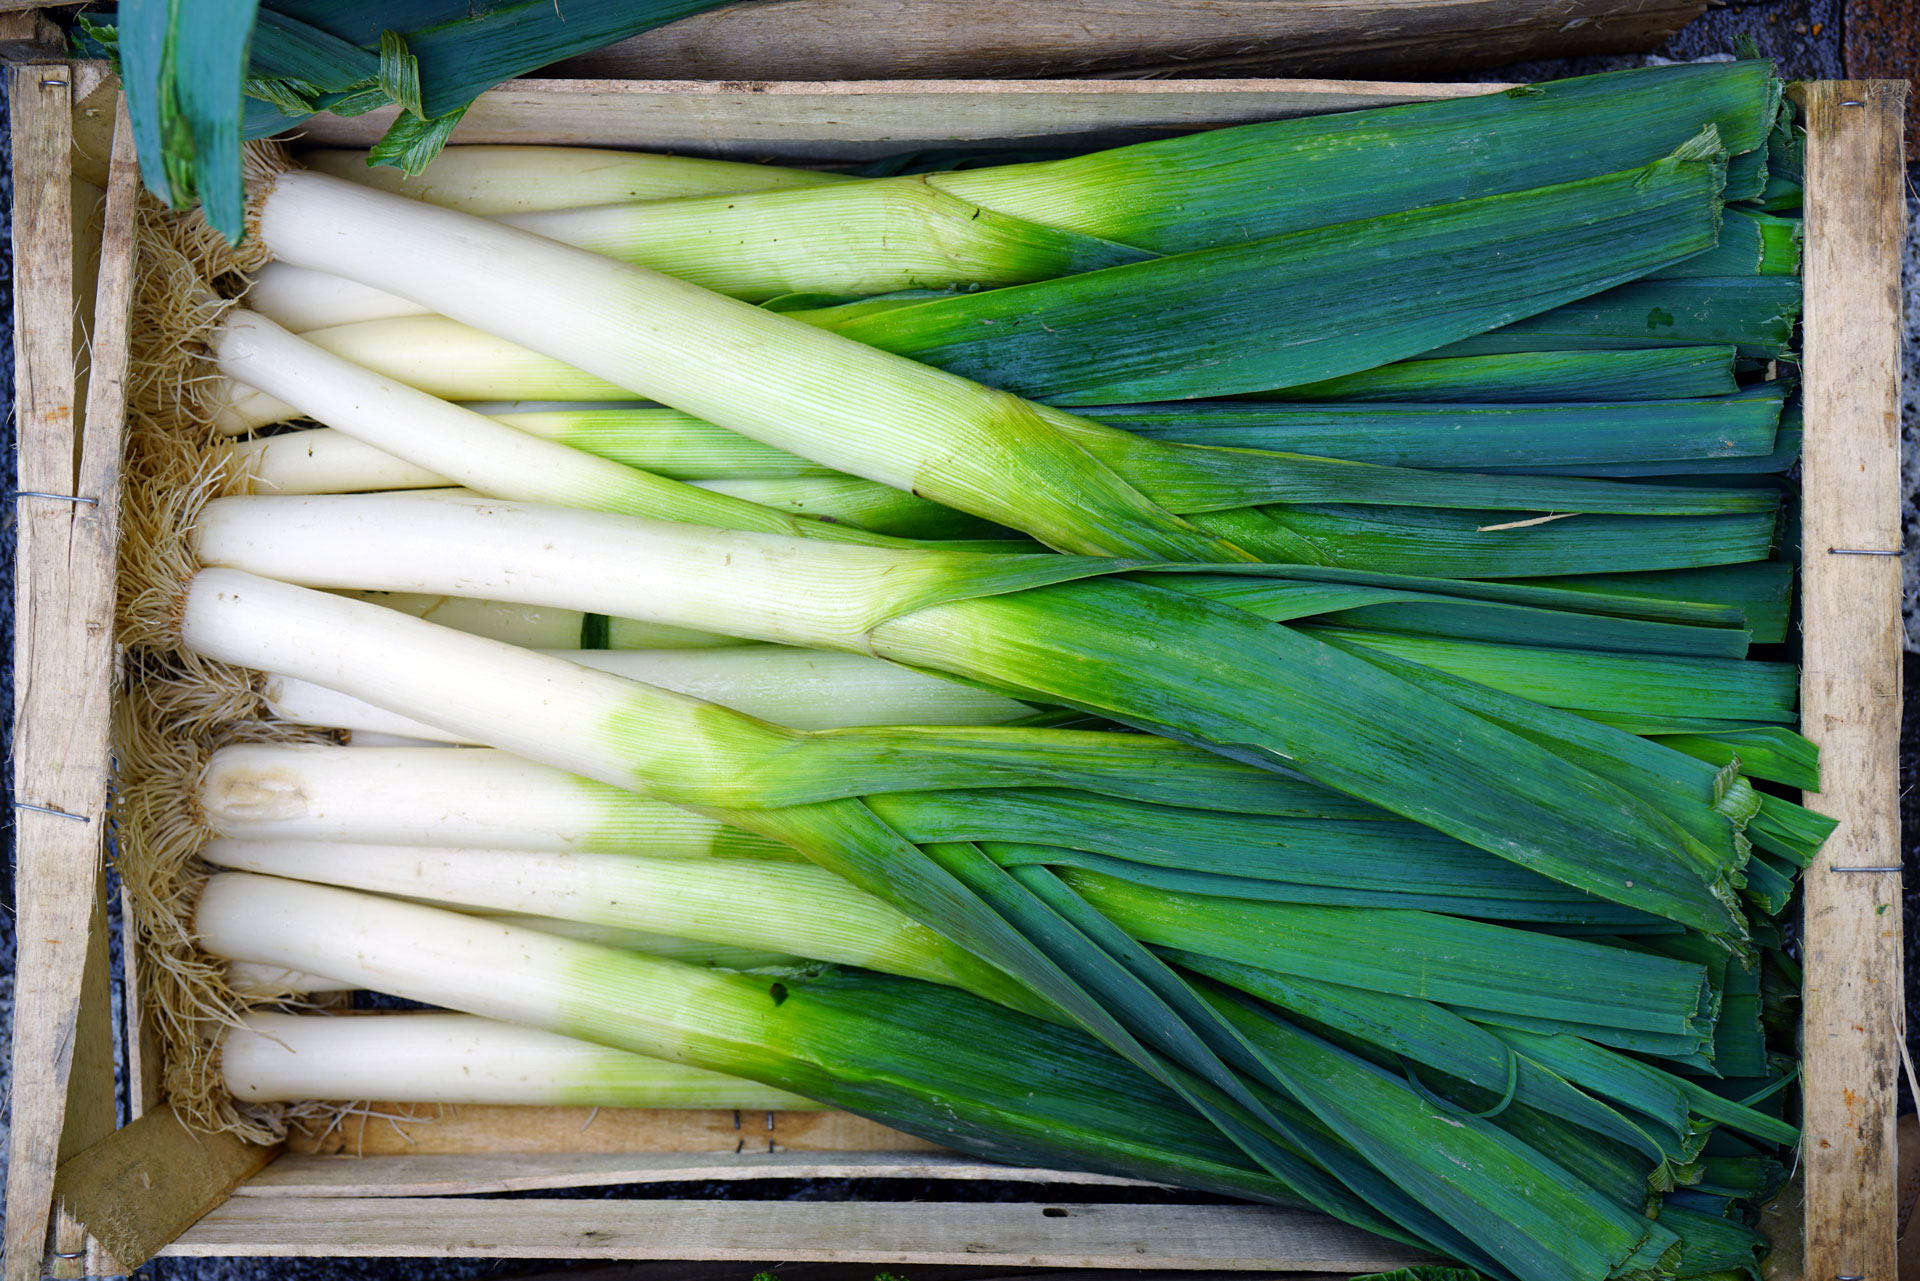 Leeks in crate at farmers' market